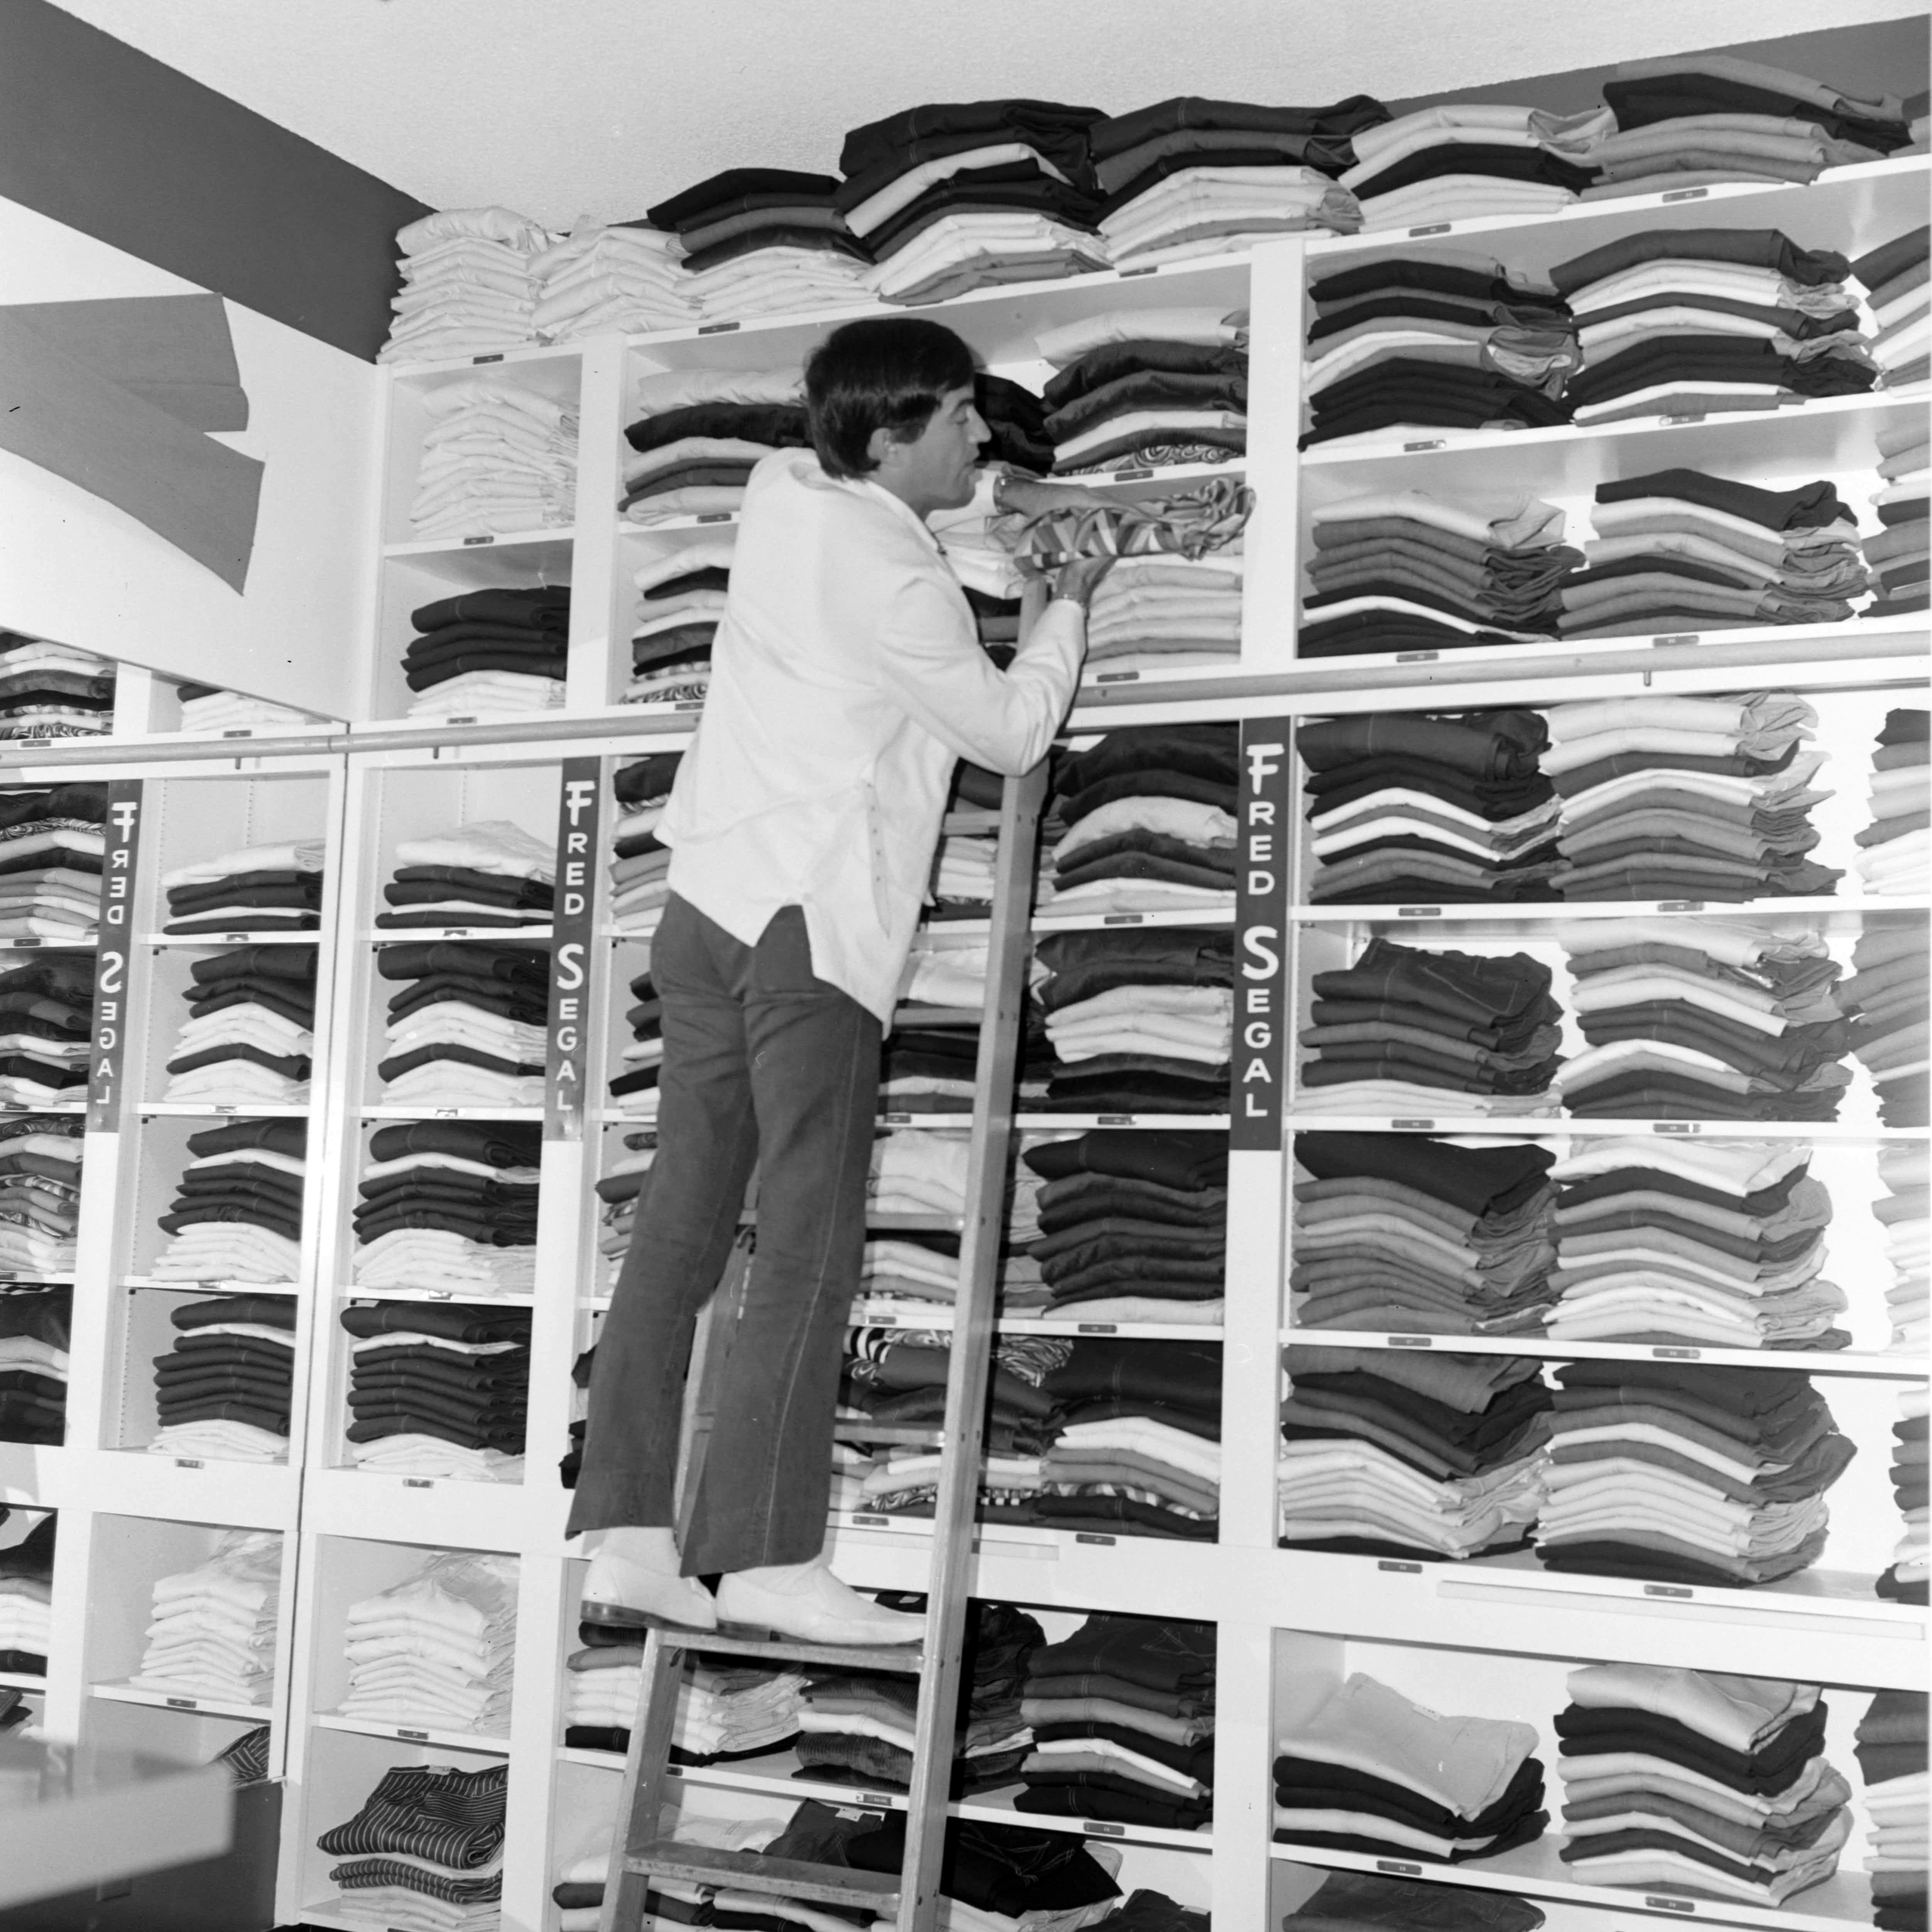 Retailer Fred Segal poses for portraits and restocks the shelves at his new Fred Segal jeans store at 8100 Melrose Avenue in Los Angeles, 1968.